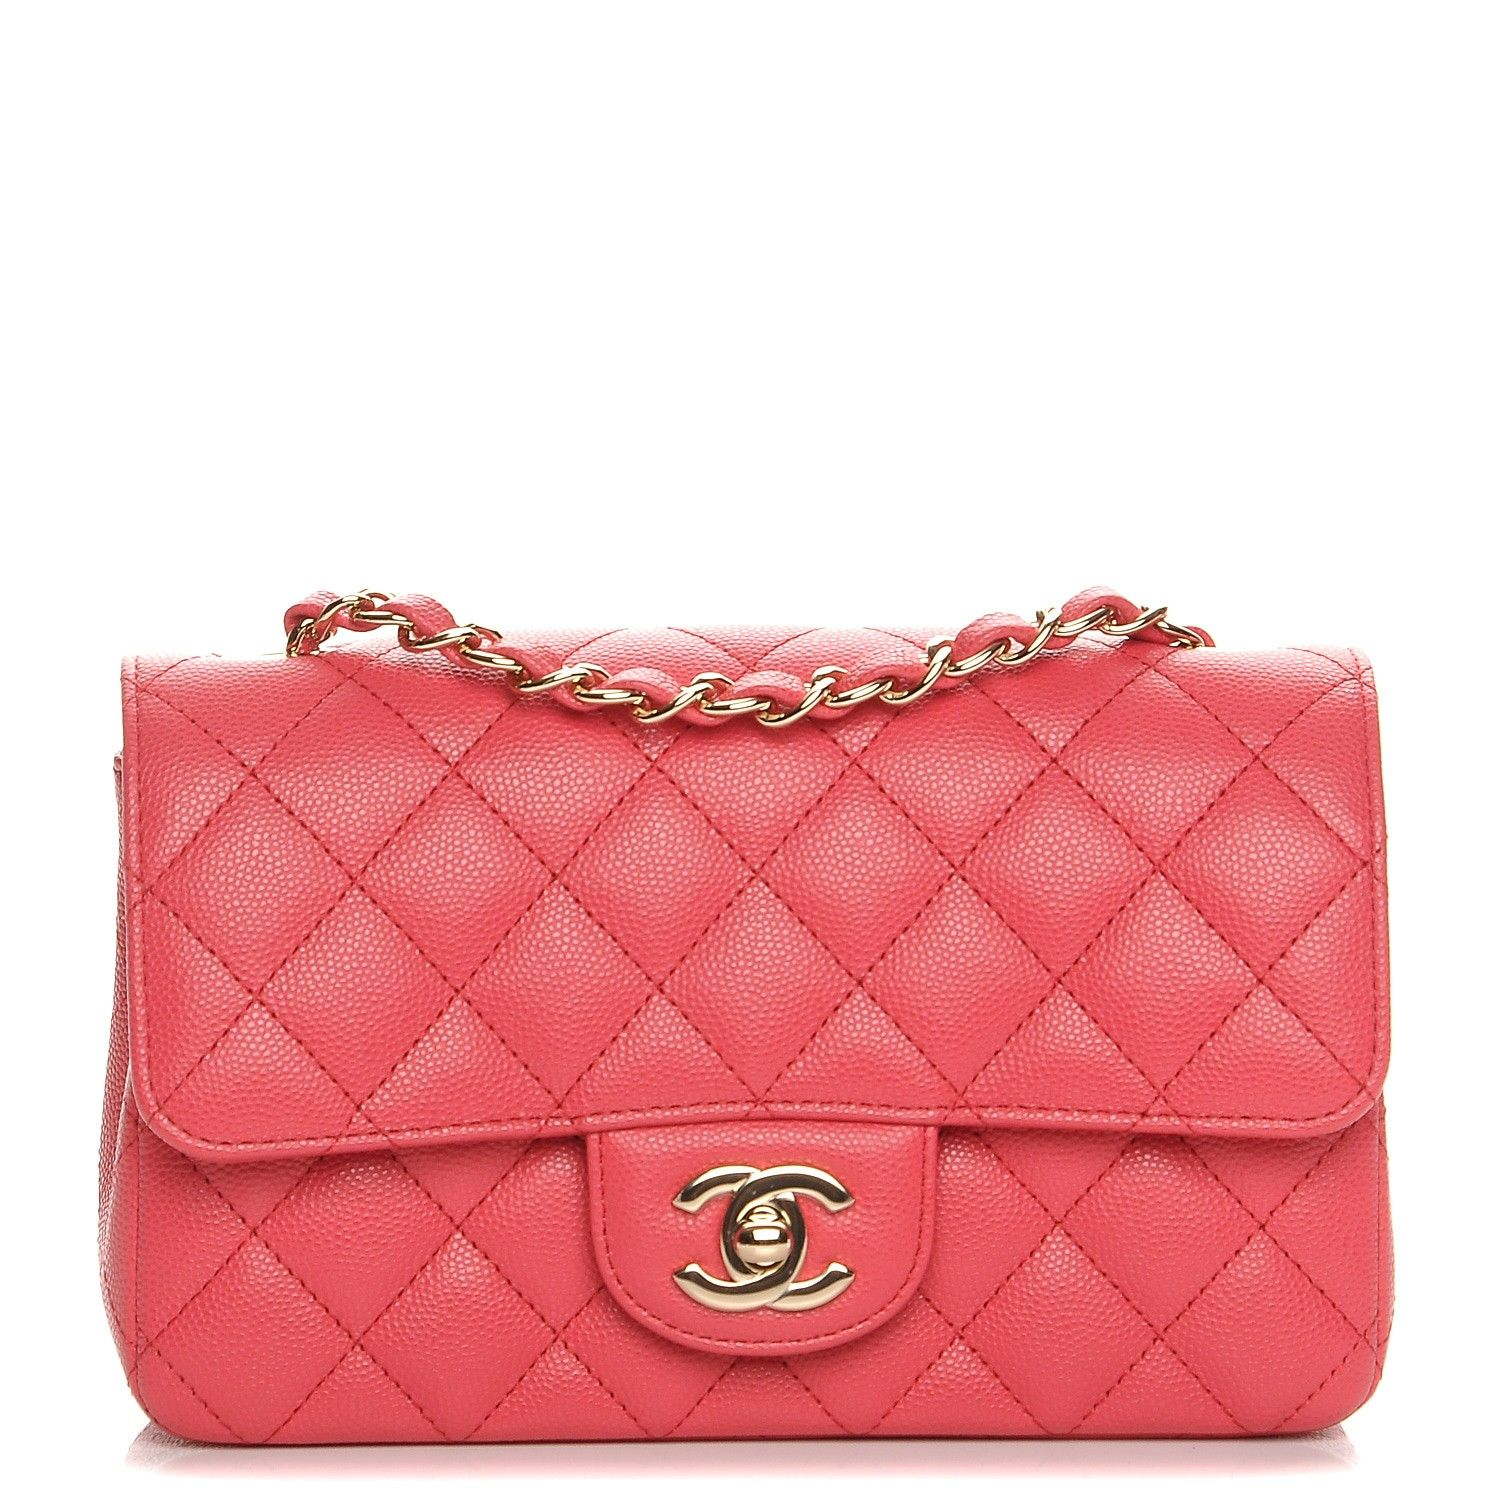 58694ff5295 This is an authentic CHANEL Caviar Quilted Mini Rectangular Flap in Dark  Pink. This stunning